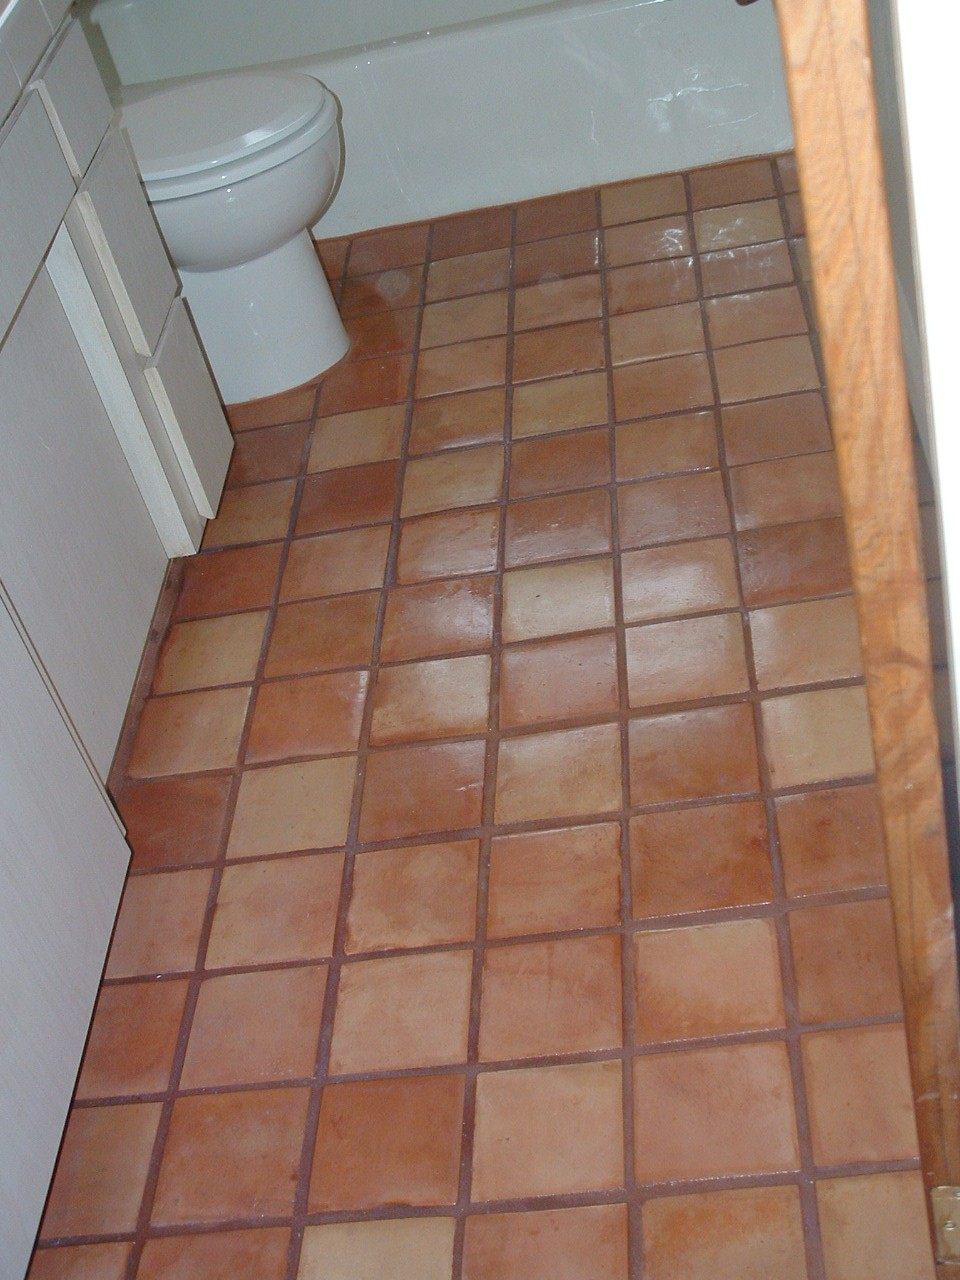 Pak Clay Red Grouting Bricks Bathroom Pure White Toilet Floor Tiles Design Discount Rates Shop in Lahore Karachi Pakistan Images